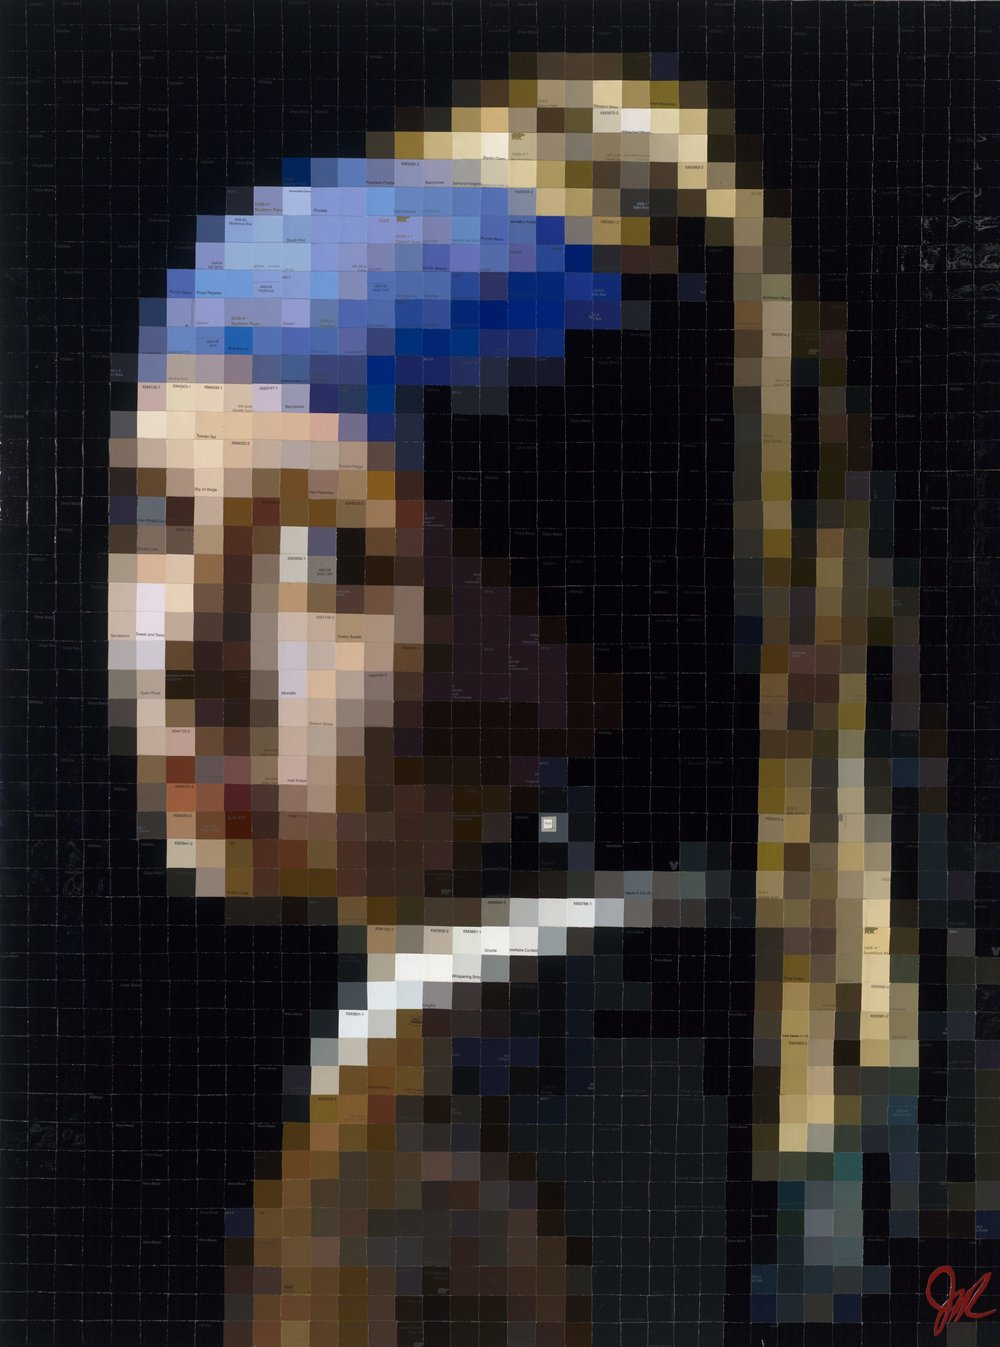 SOLD /// Girl with the Pearl Earring [After Vermeer] • 48 X 36 • paint swatch (paper) collage on panel